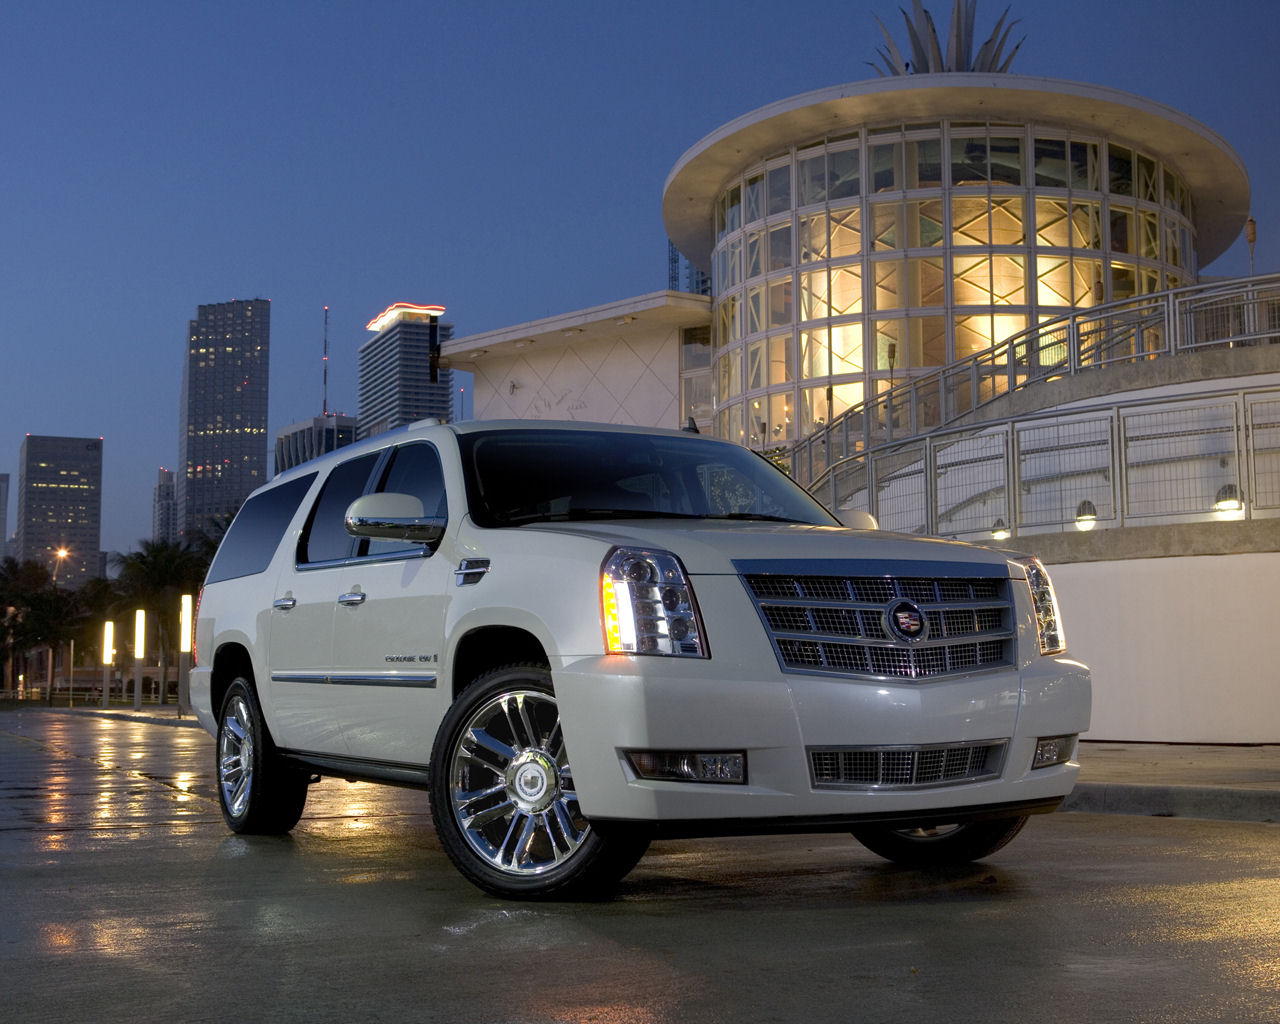 Wallpapers Cadillac Escalade Wallpaper Nude and Porn Pictures